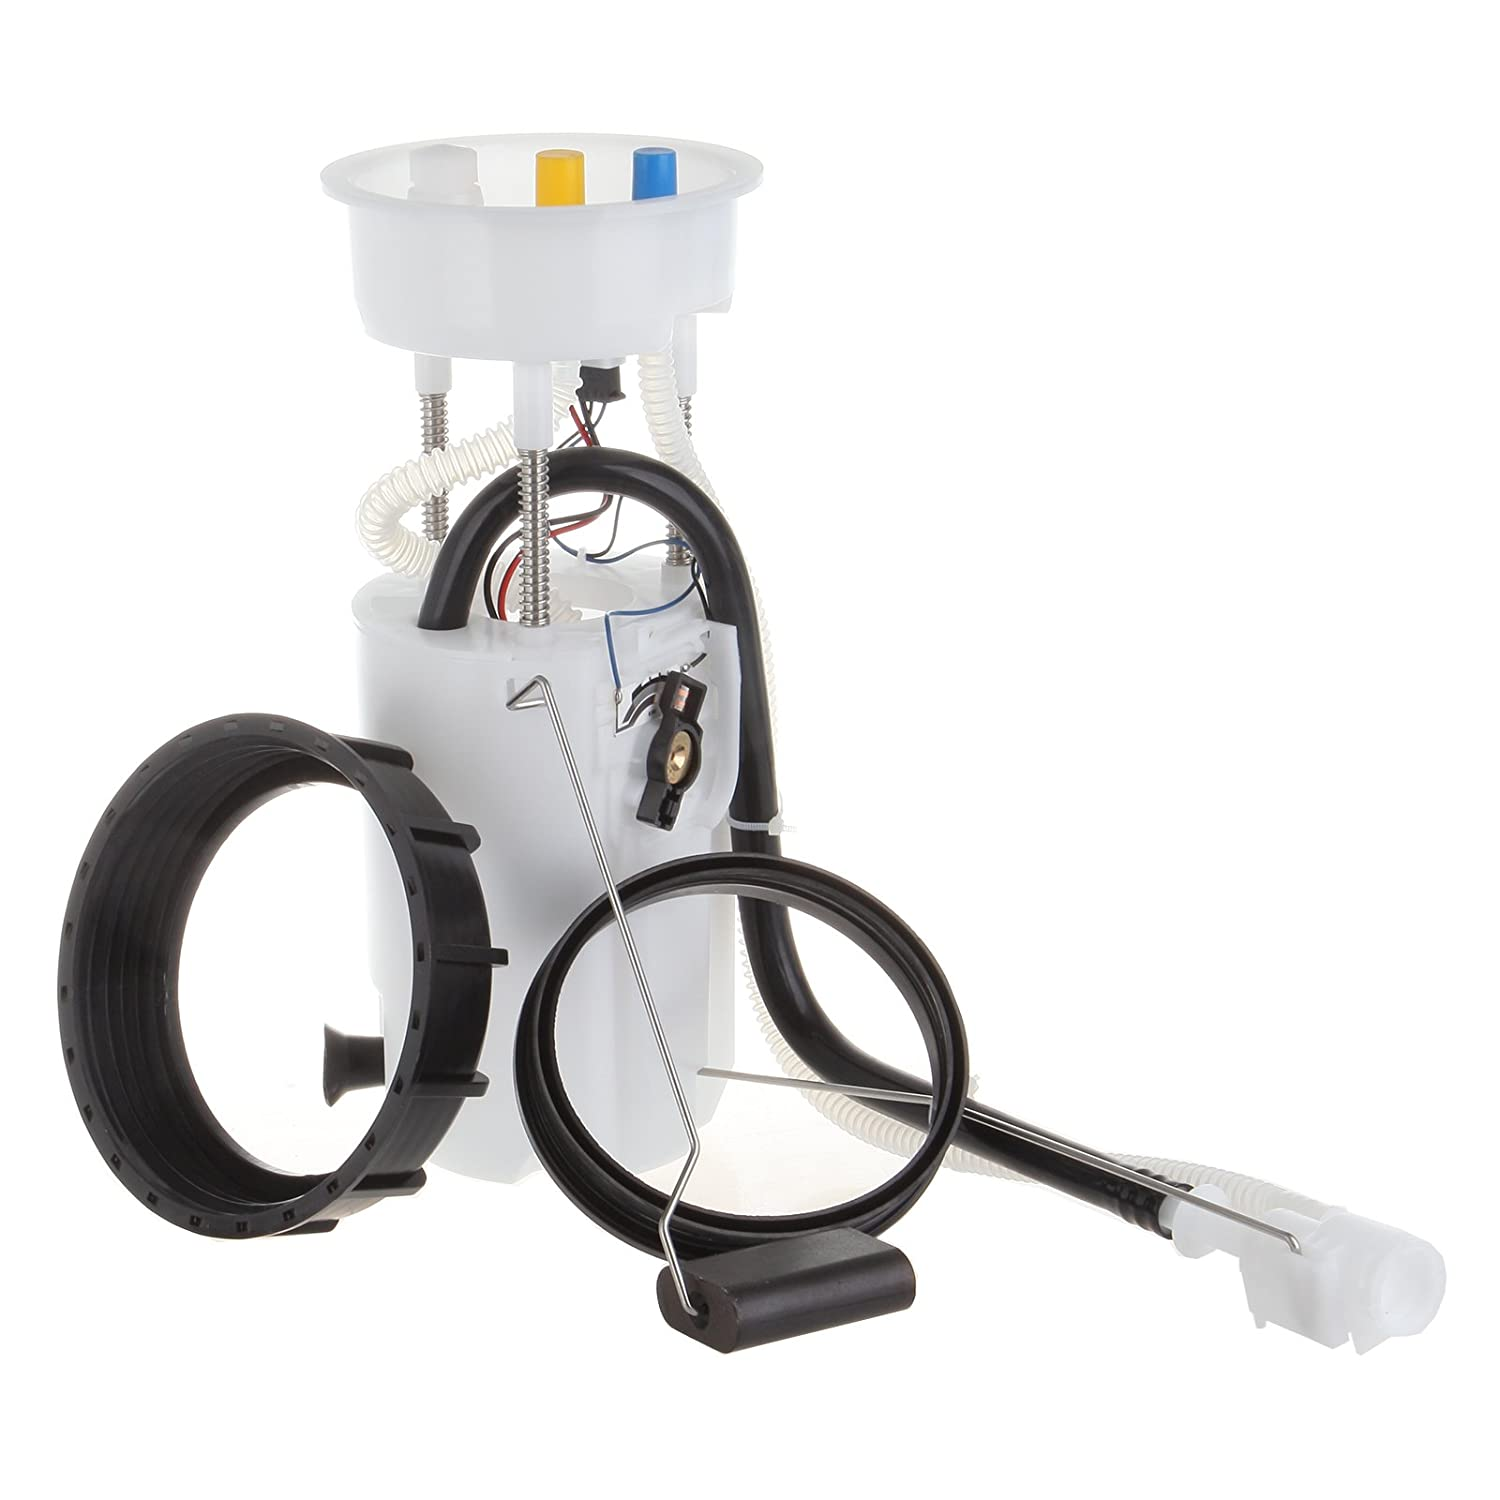 Electric Fuel Pump Module Assembly For Mercedes Benz Ml 2001 Ml320 Filter Replacement 320 1998 1999 2000 2002 2003 Oem E8389m Automotive